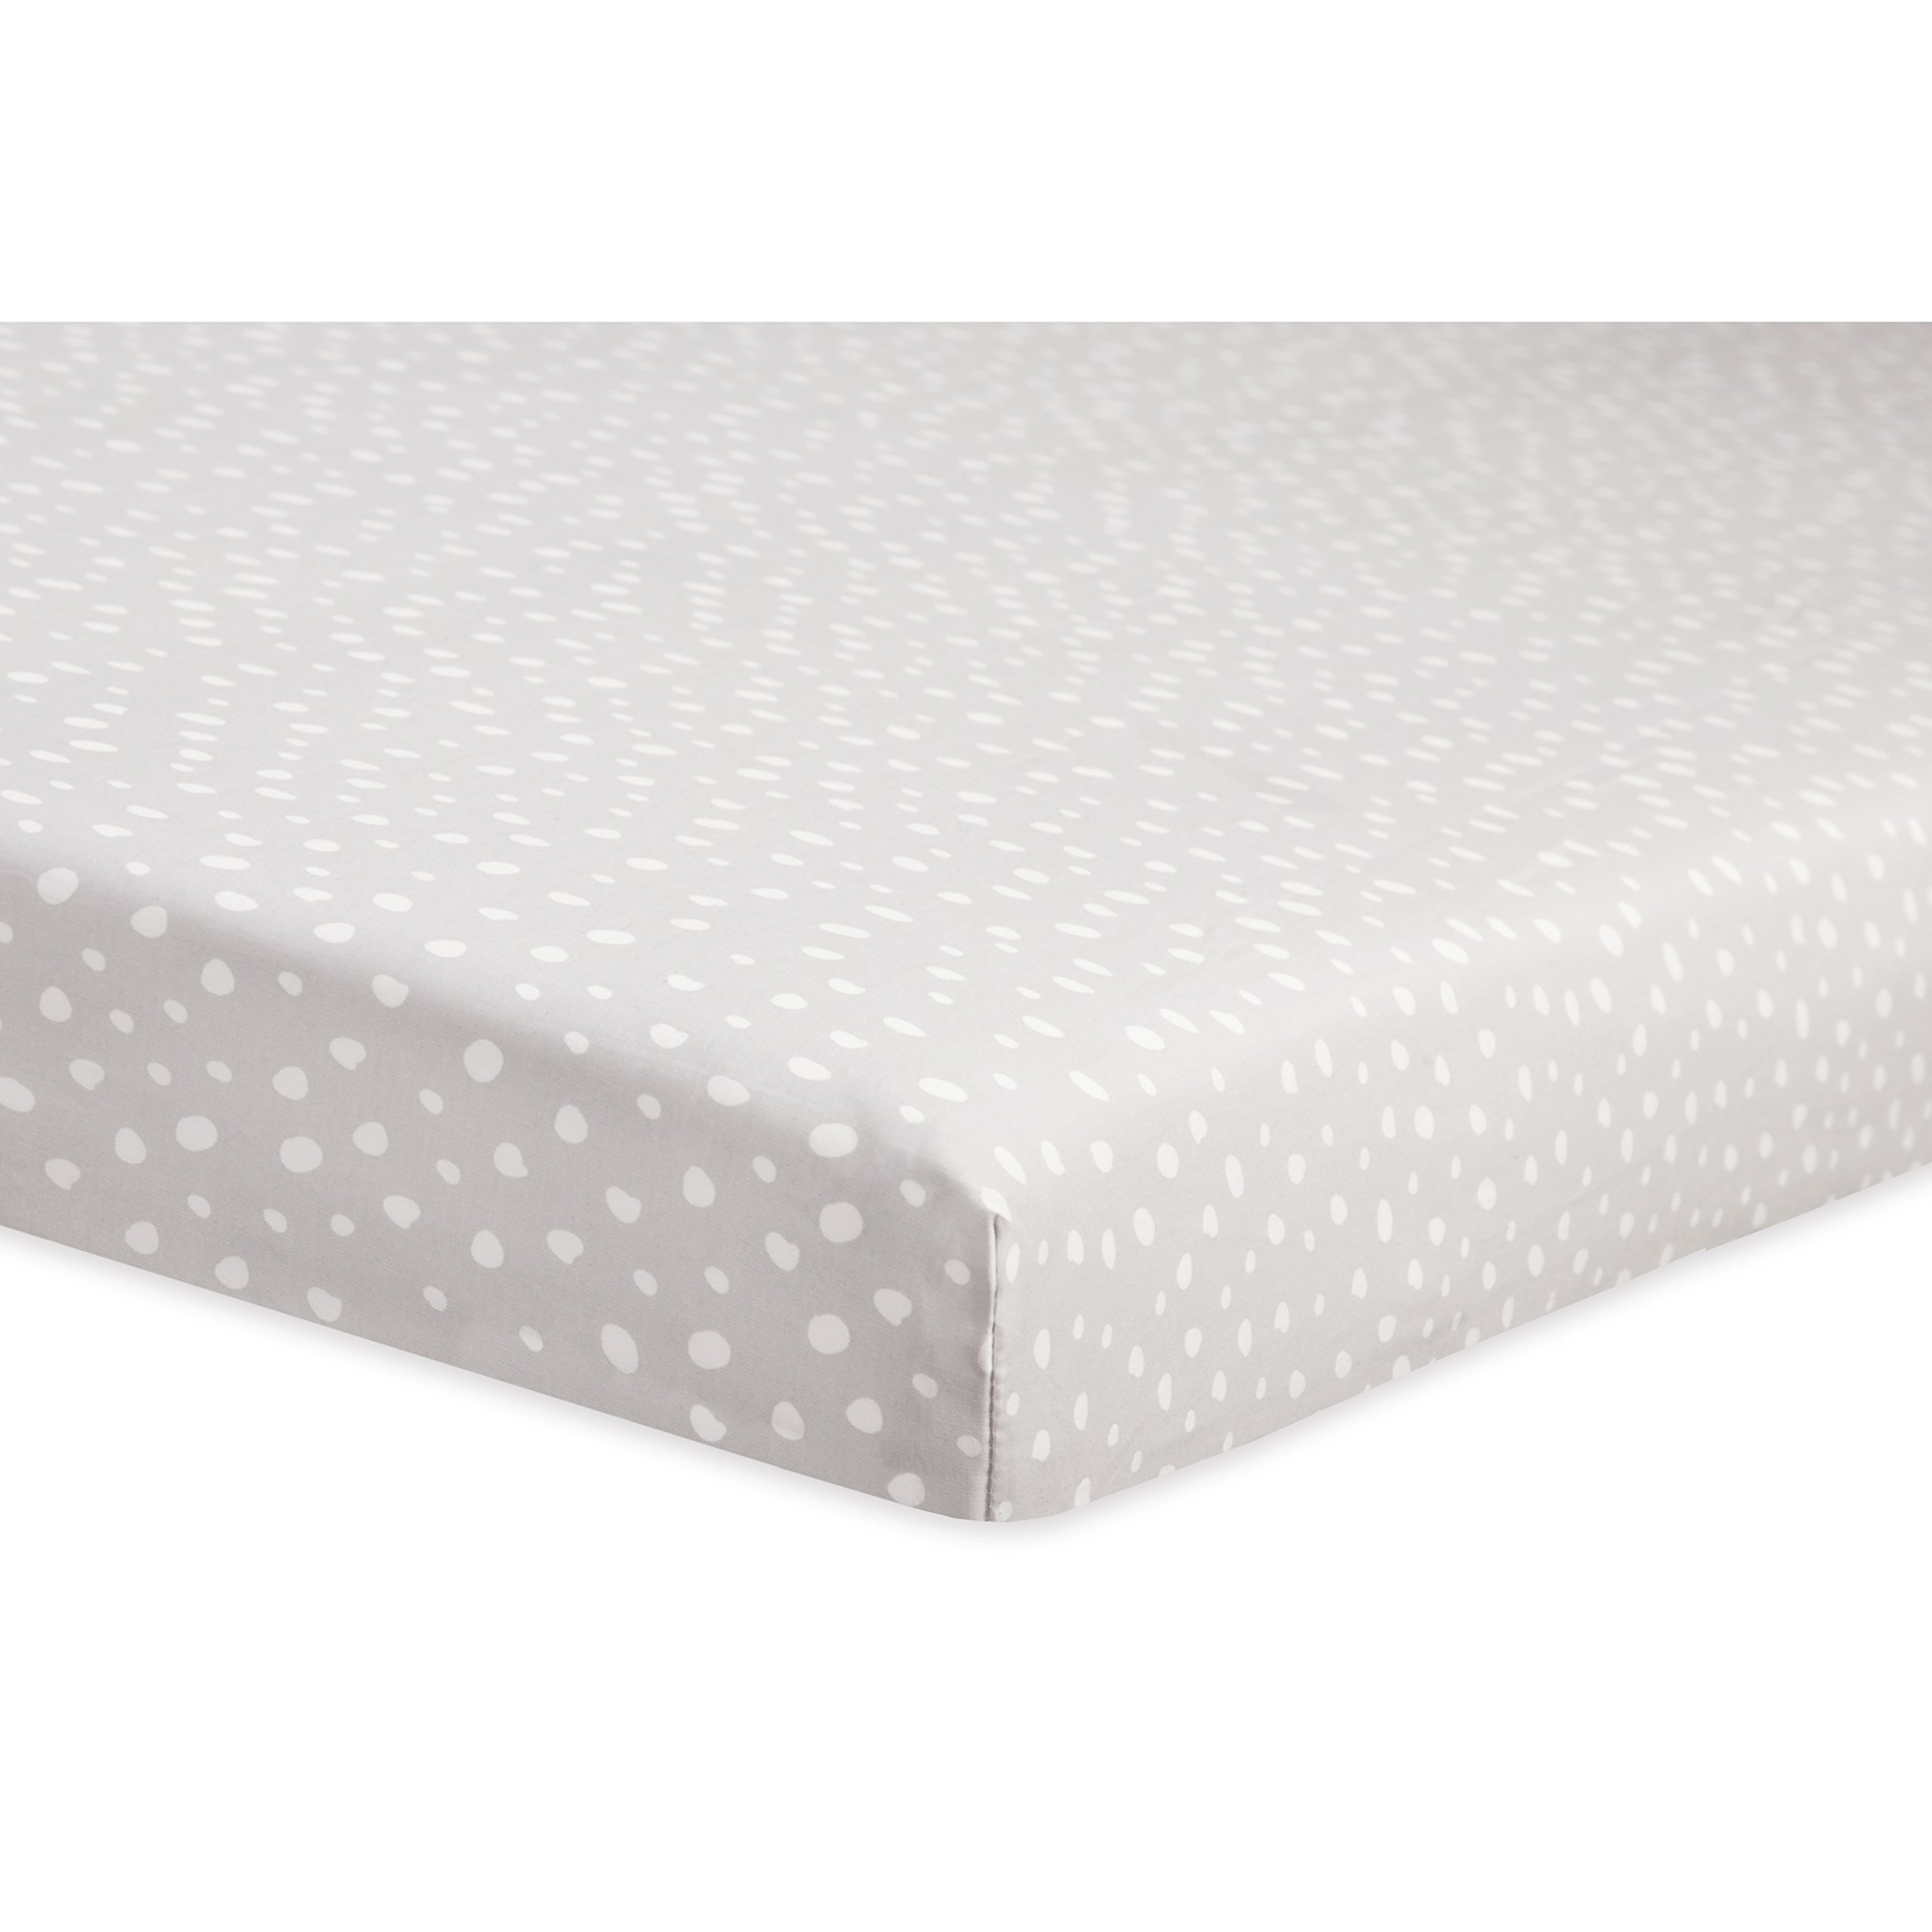 Babyletto Mini Crib Sheet, Tuxedo Dots